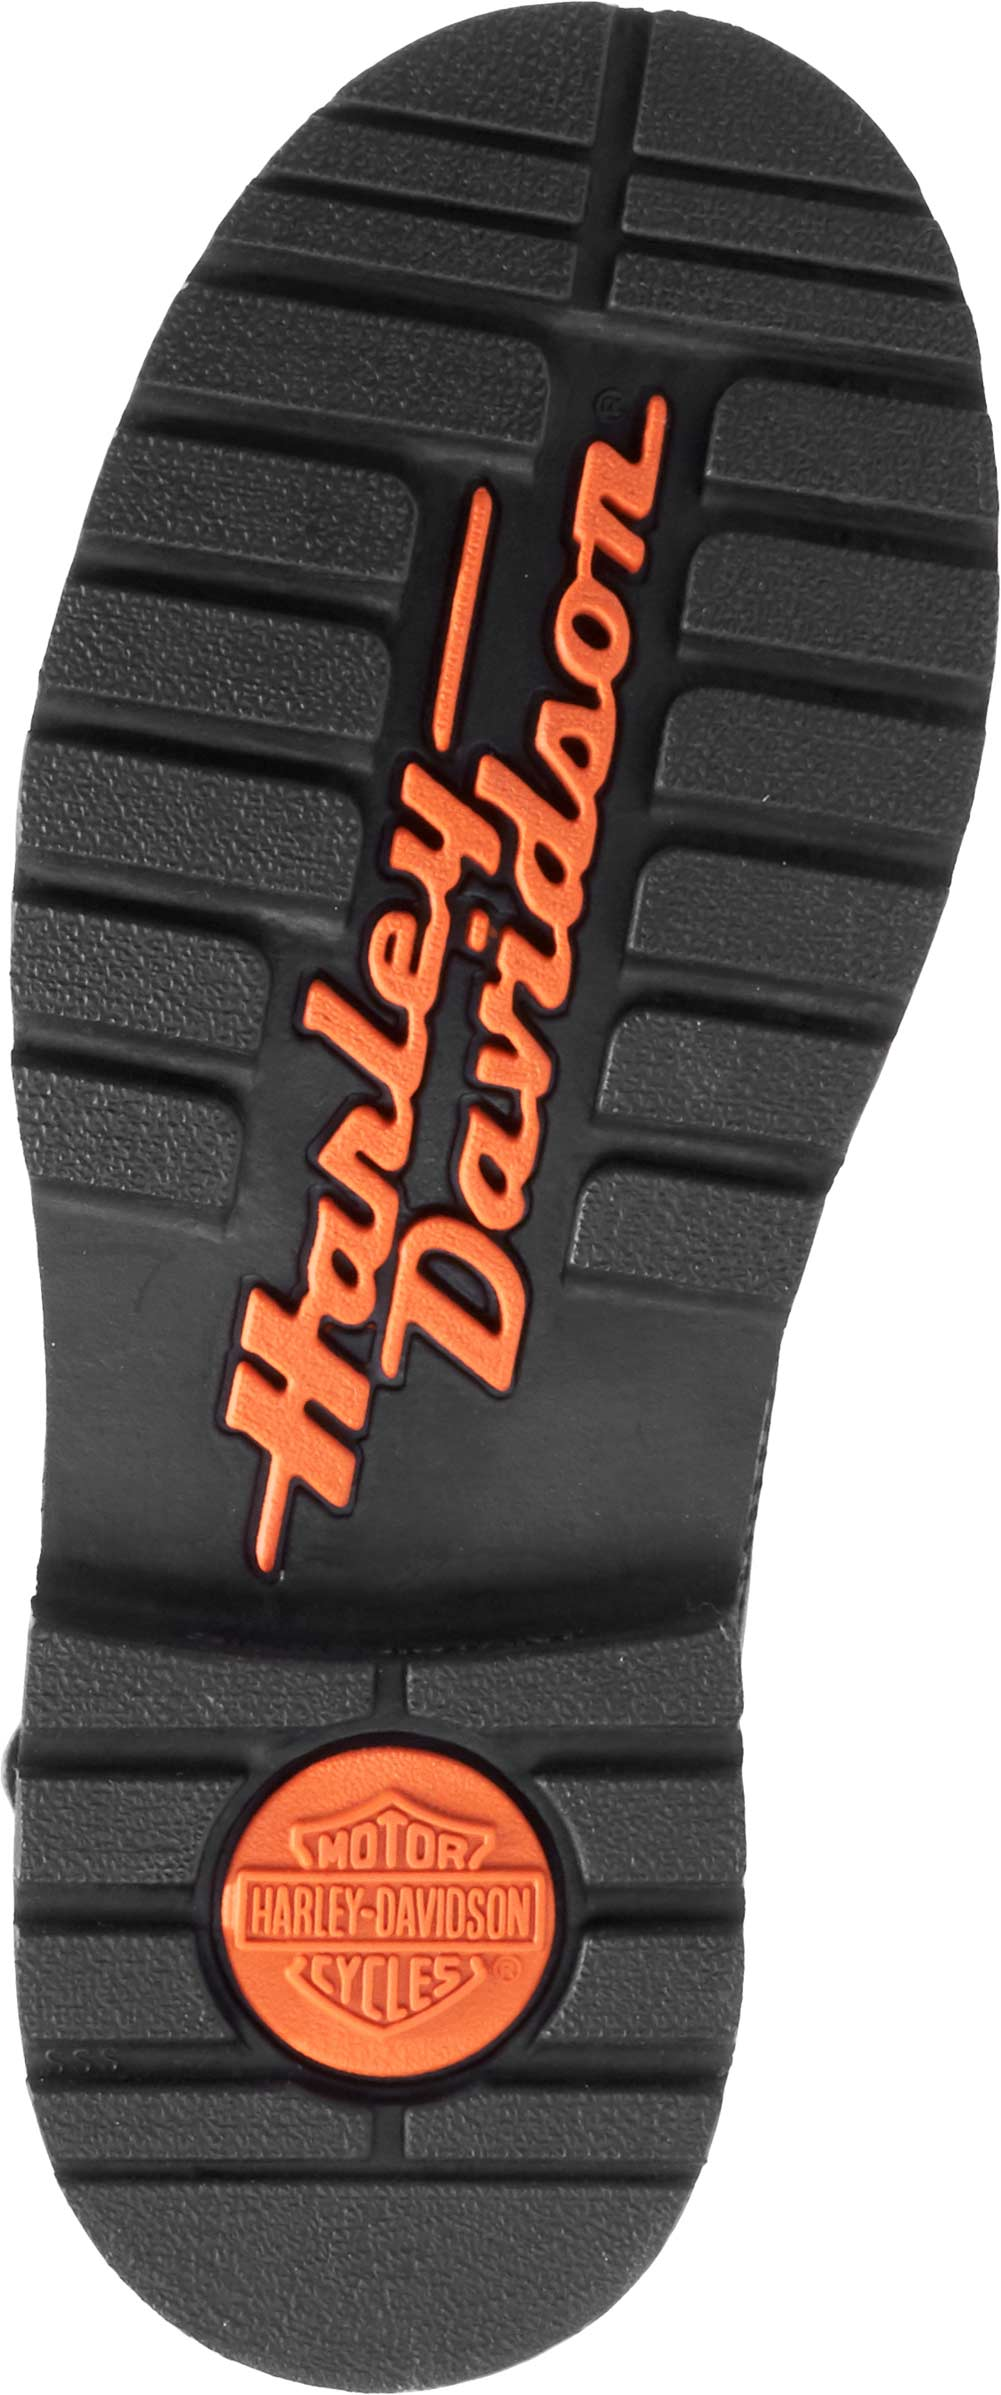 HARLEY-DAVIDSON FOOTWEAR Womens Kennington Motorcycle Boot